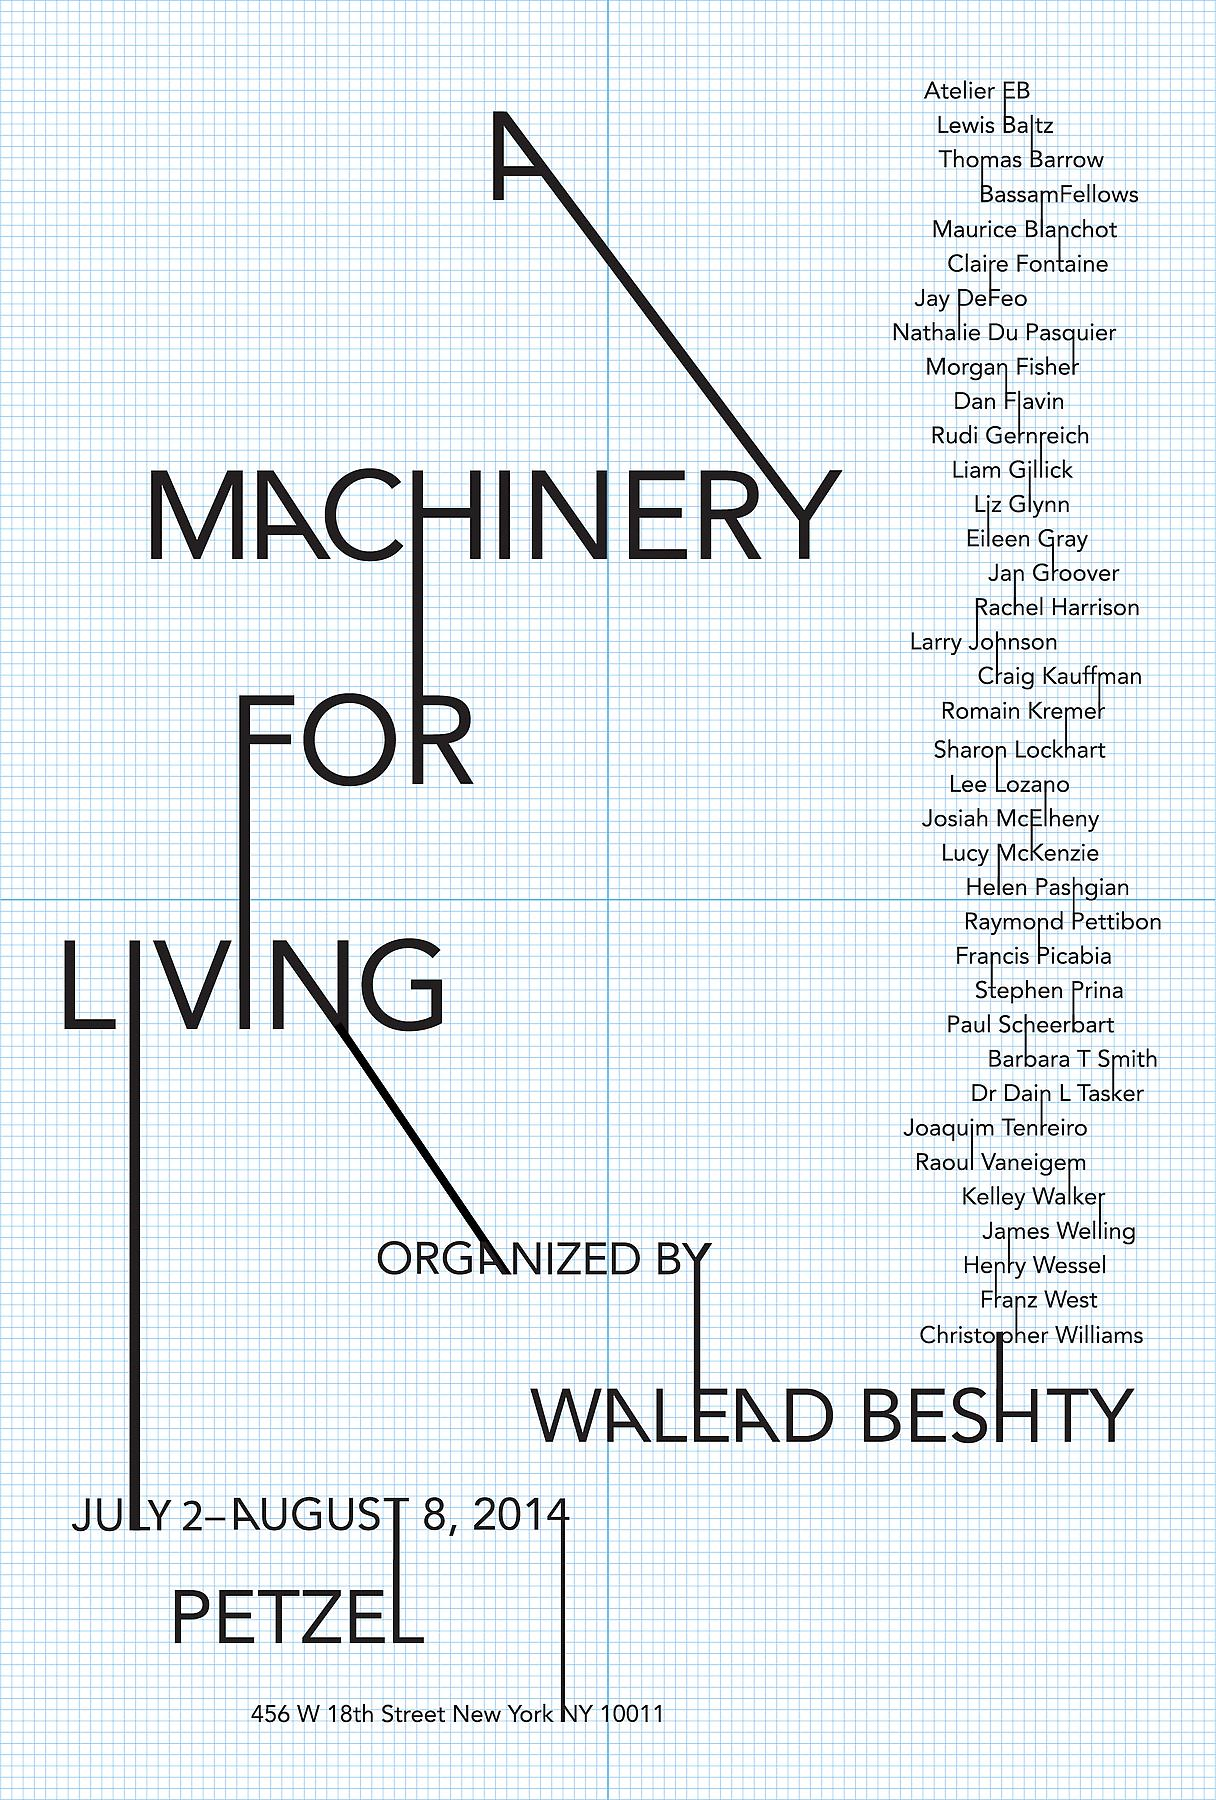 <i>A Machinery for Living</i> Organized by Walead Beshty